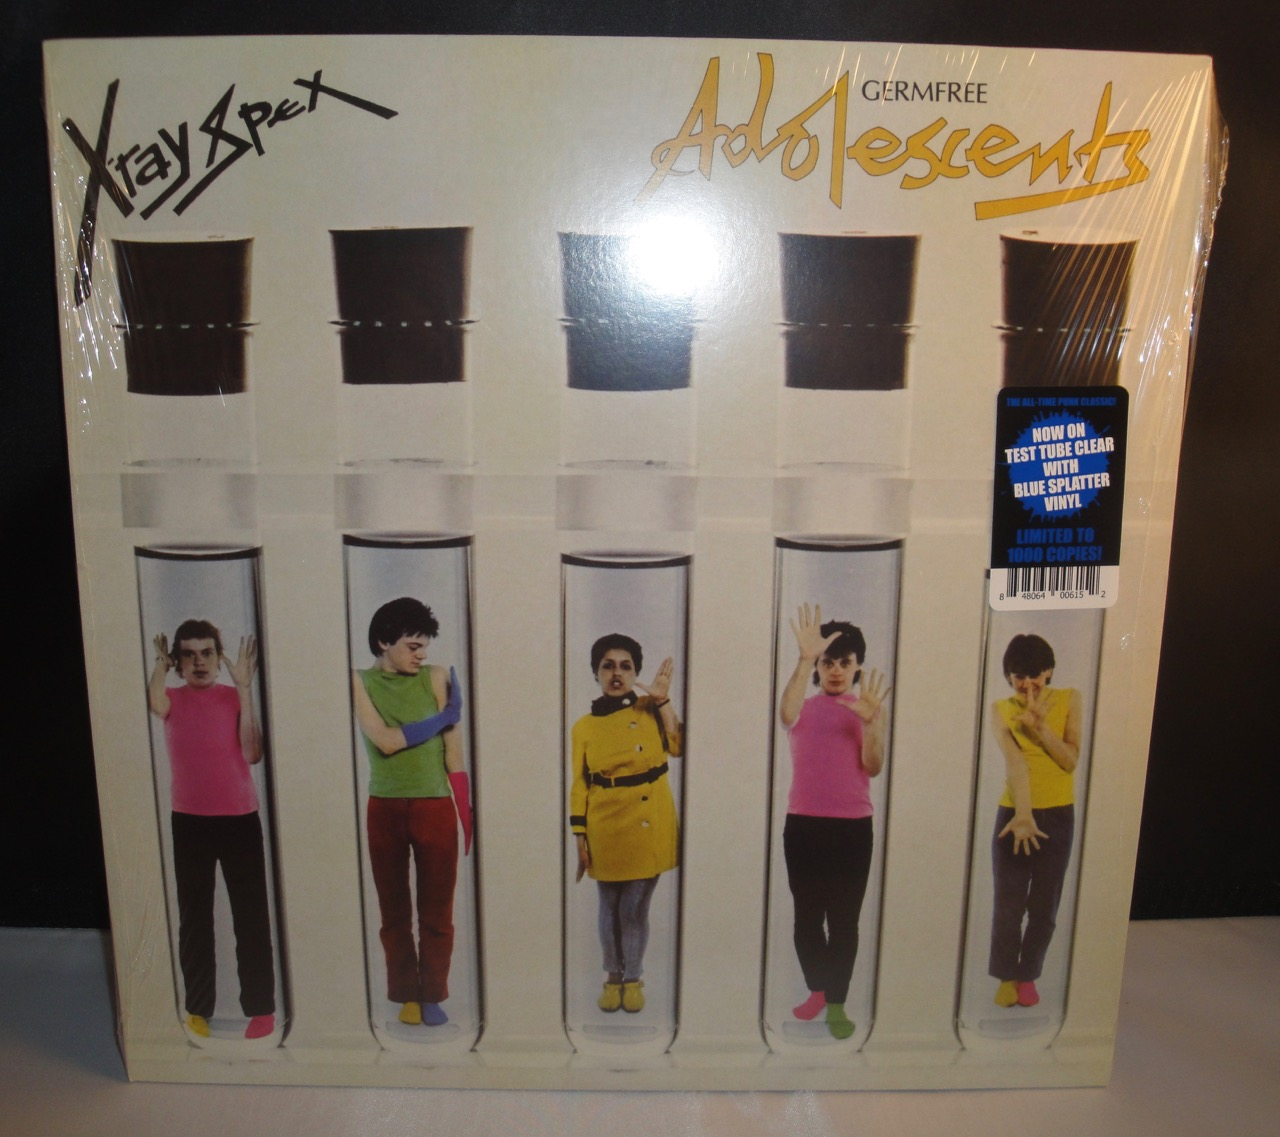 X-Ray Spex - Germfree Adolescents - Limited Clear and Blue Splatter Vinyl, 2017